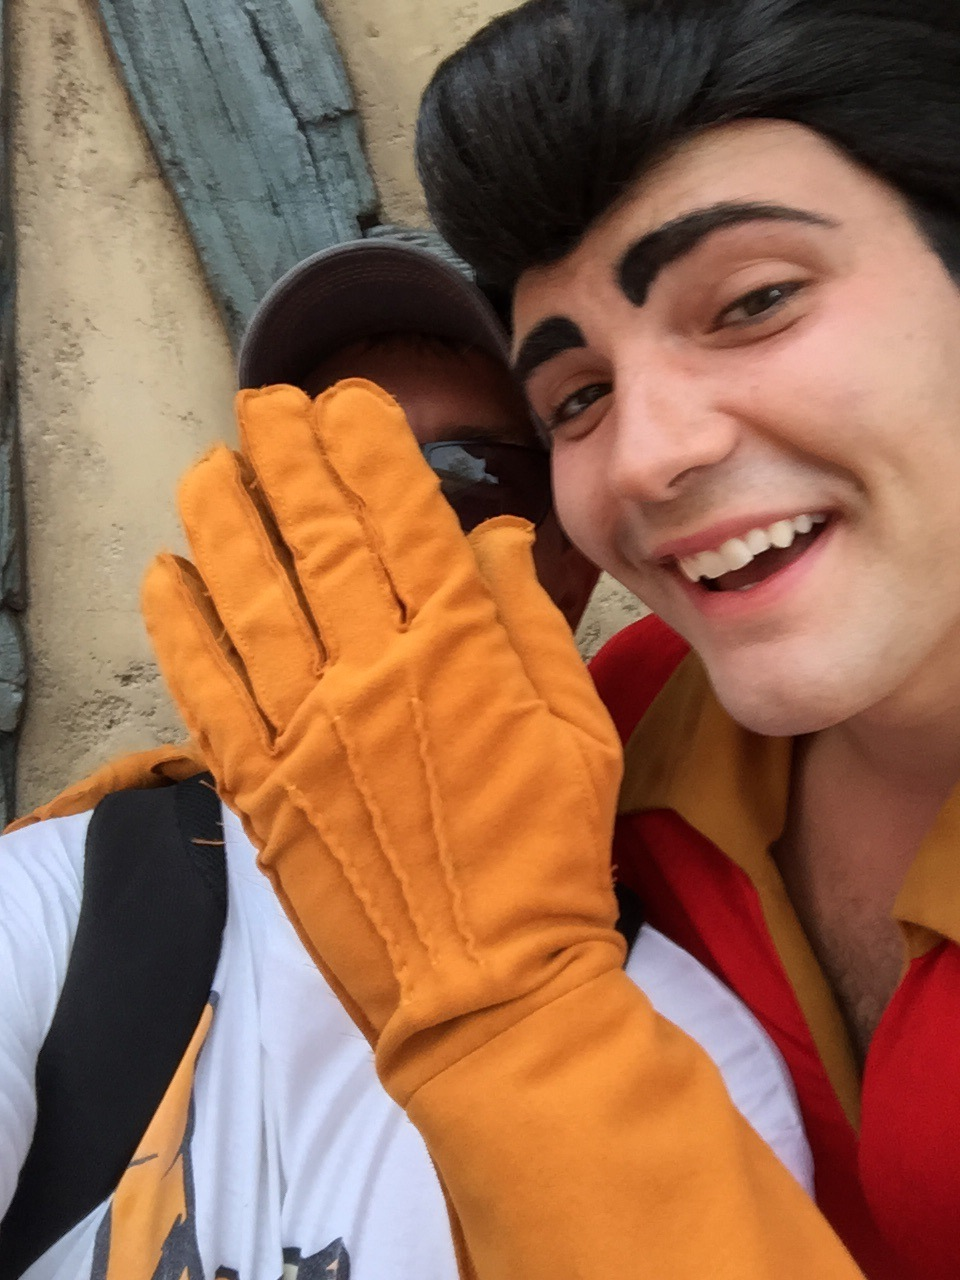 I asked Gaston for a selfie...